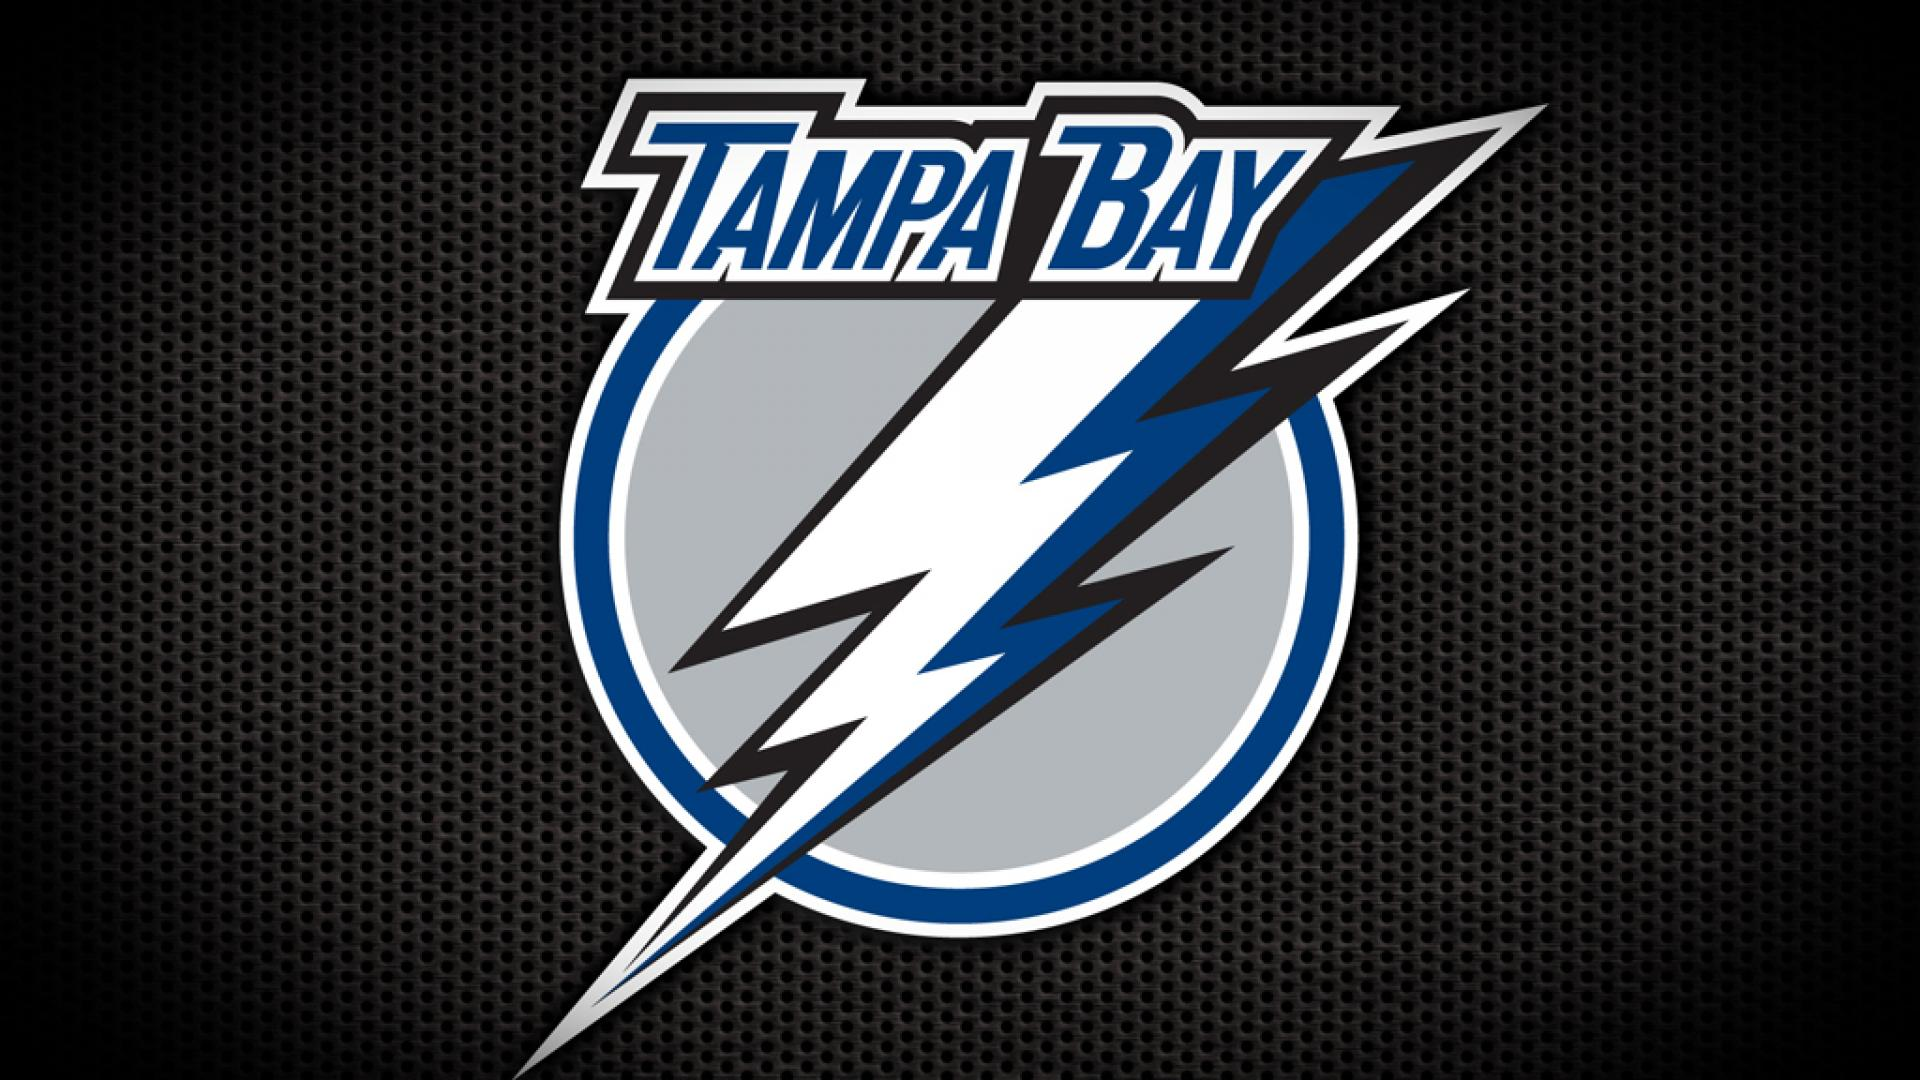 hockey lightning tampa bay HD 169 1280x720 1366x768 1600x900 1920x1080